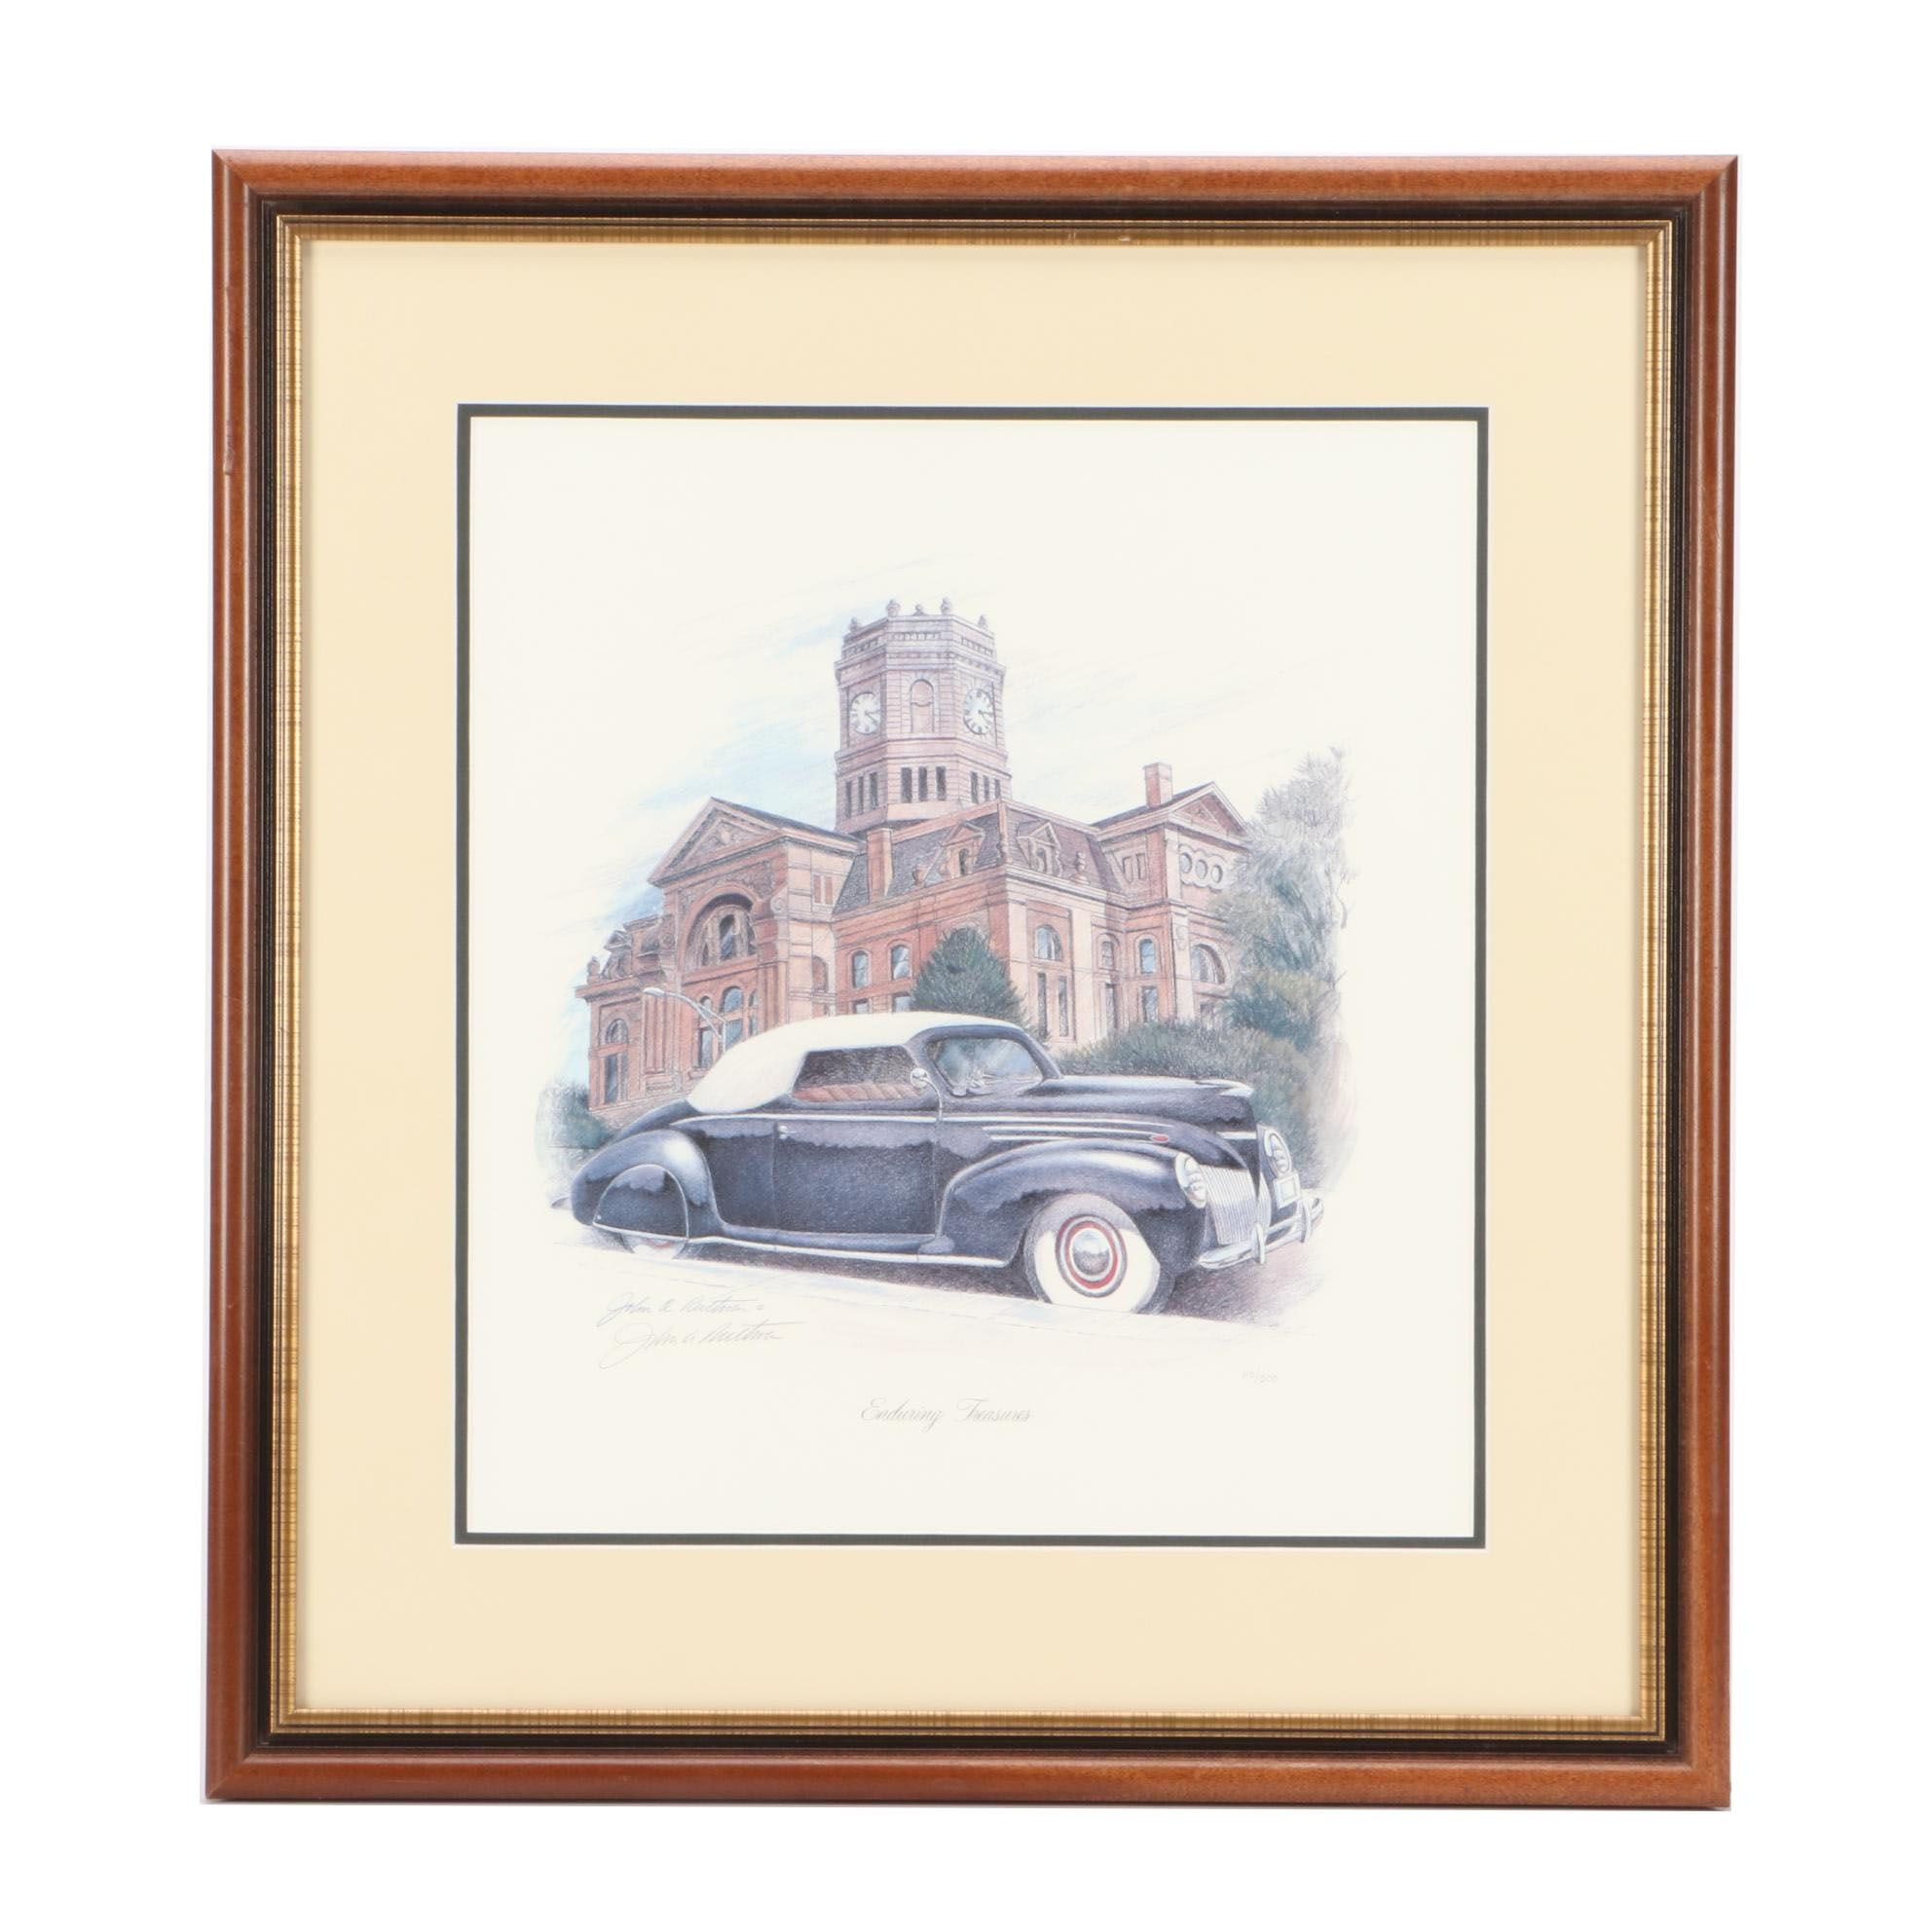 """John Ruthven Limited Edition Offset Lithograph """"Enduring Treasures"""""""